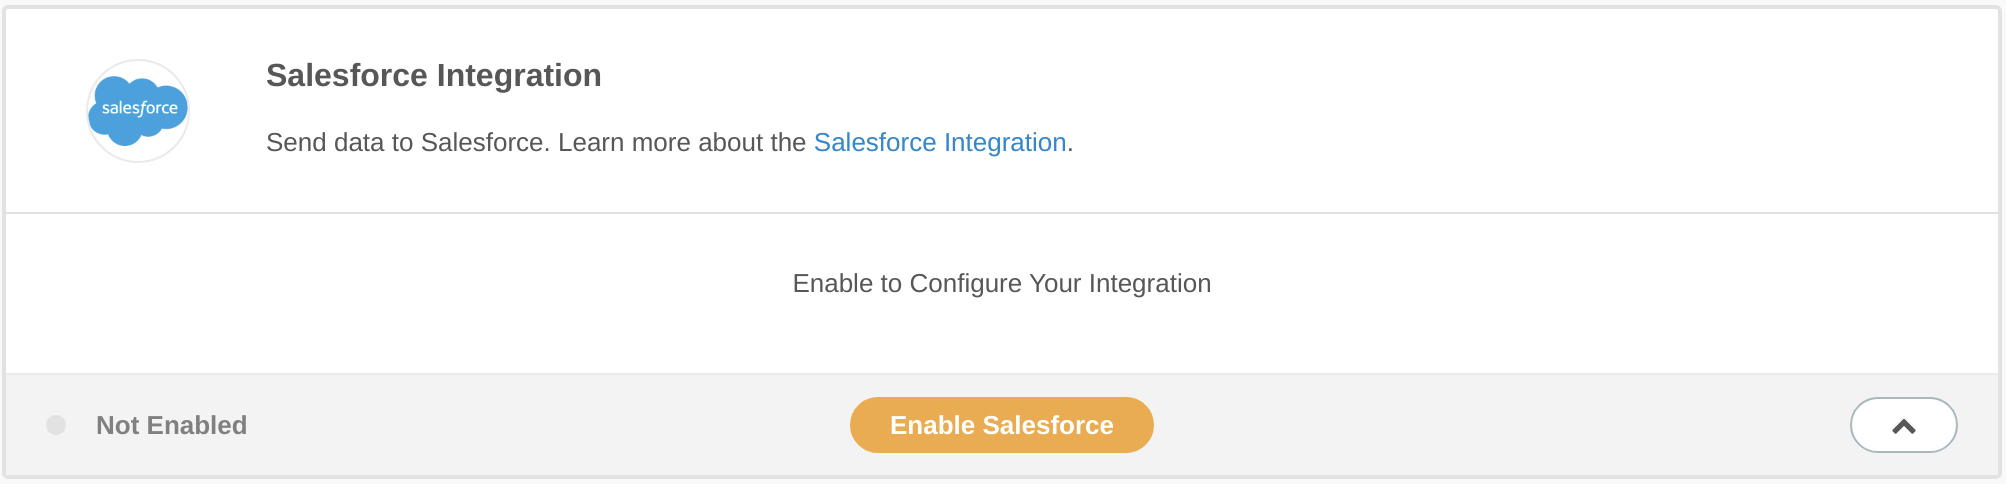 Click Enable Salesforce to enable the integration